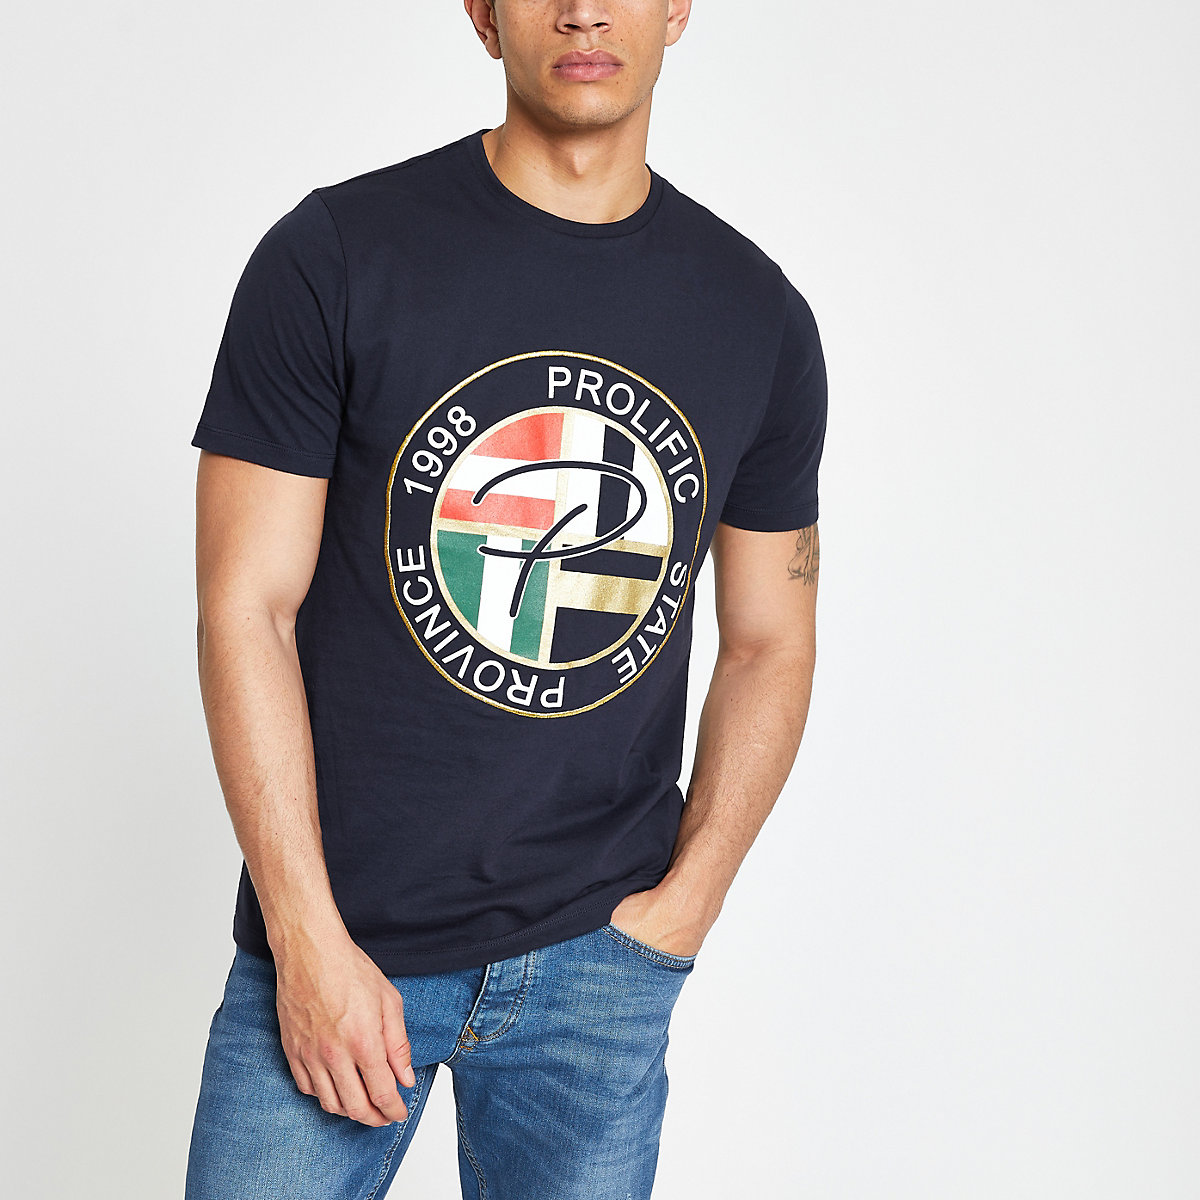 Navy 'Prolific' printed slim fit T-shirt